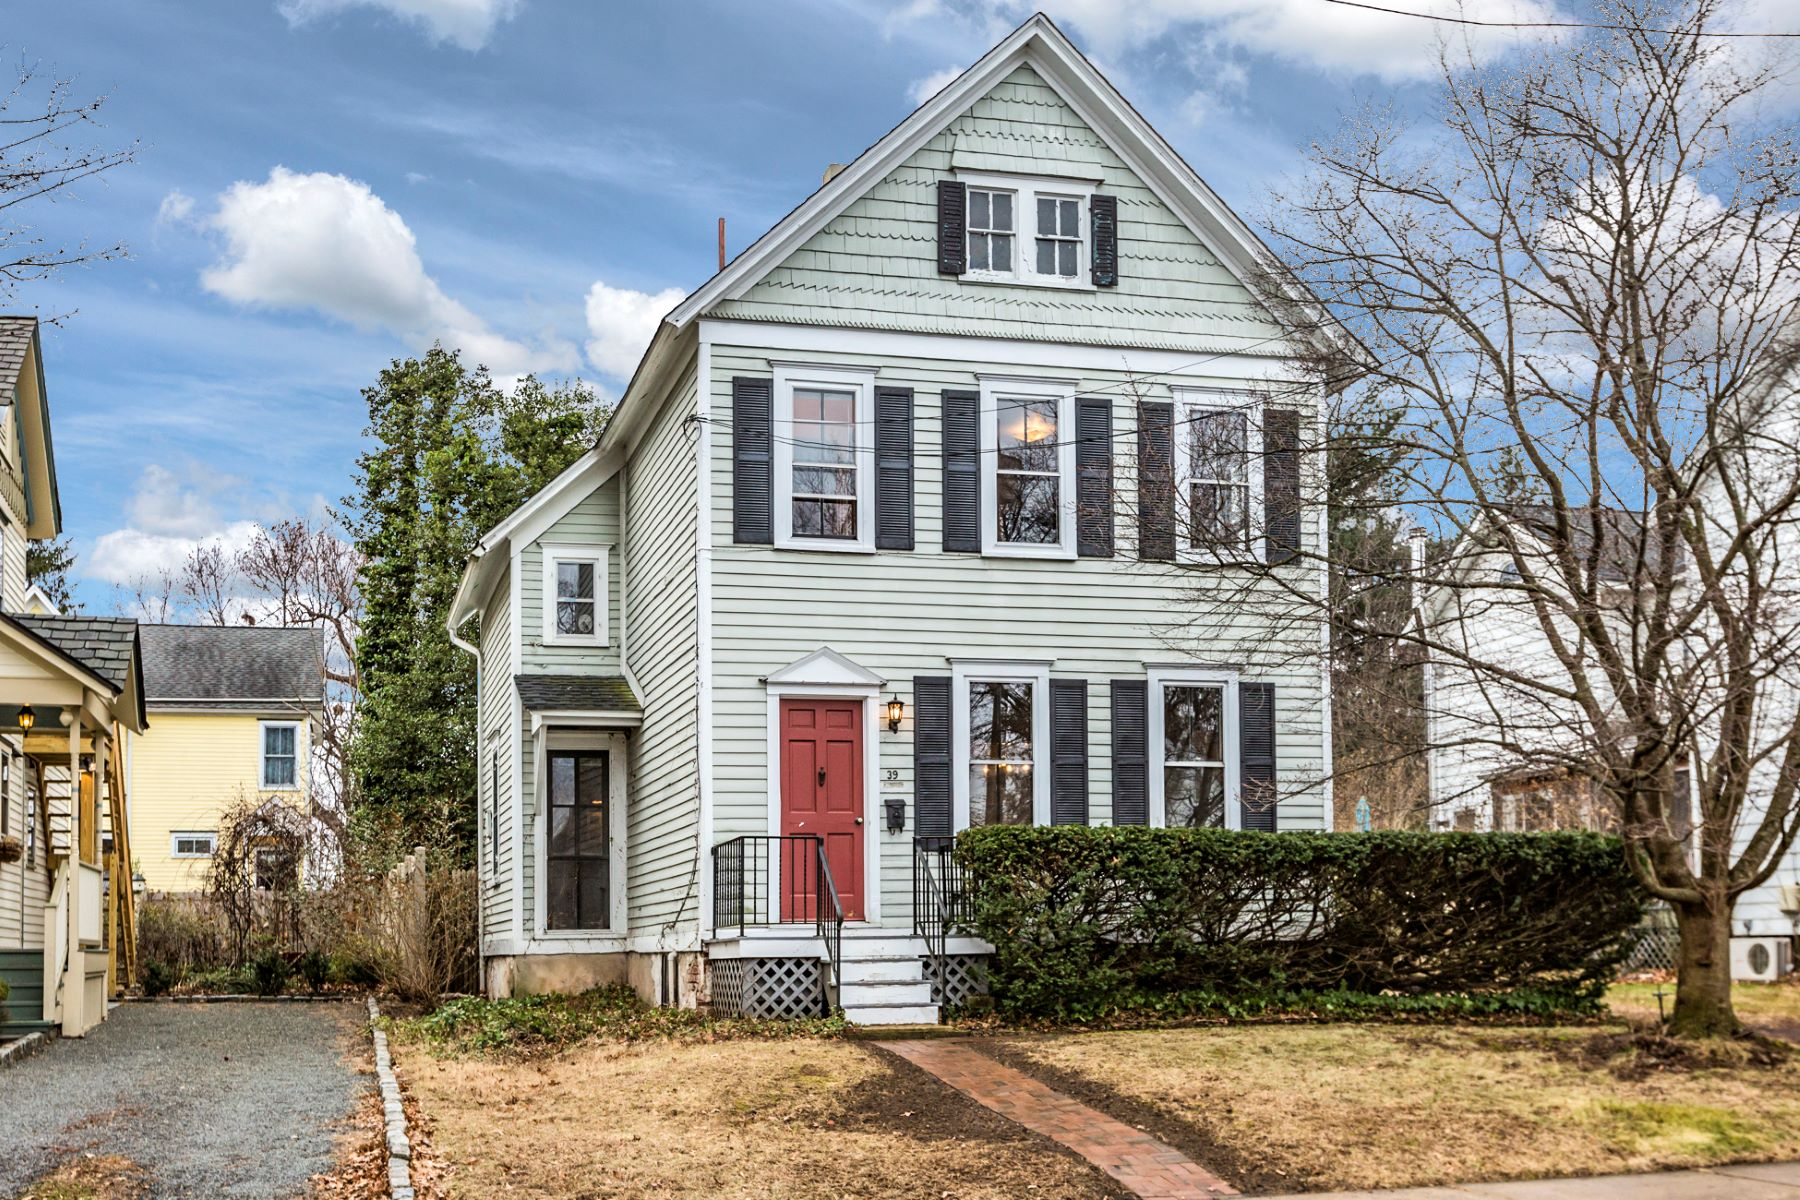 Single Family Home for Sale at An In-Town Gem - Hopewell Boro 39 Columbia Avenue Hopewell, New Jersey, 08525 United States